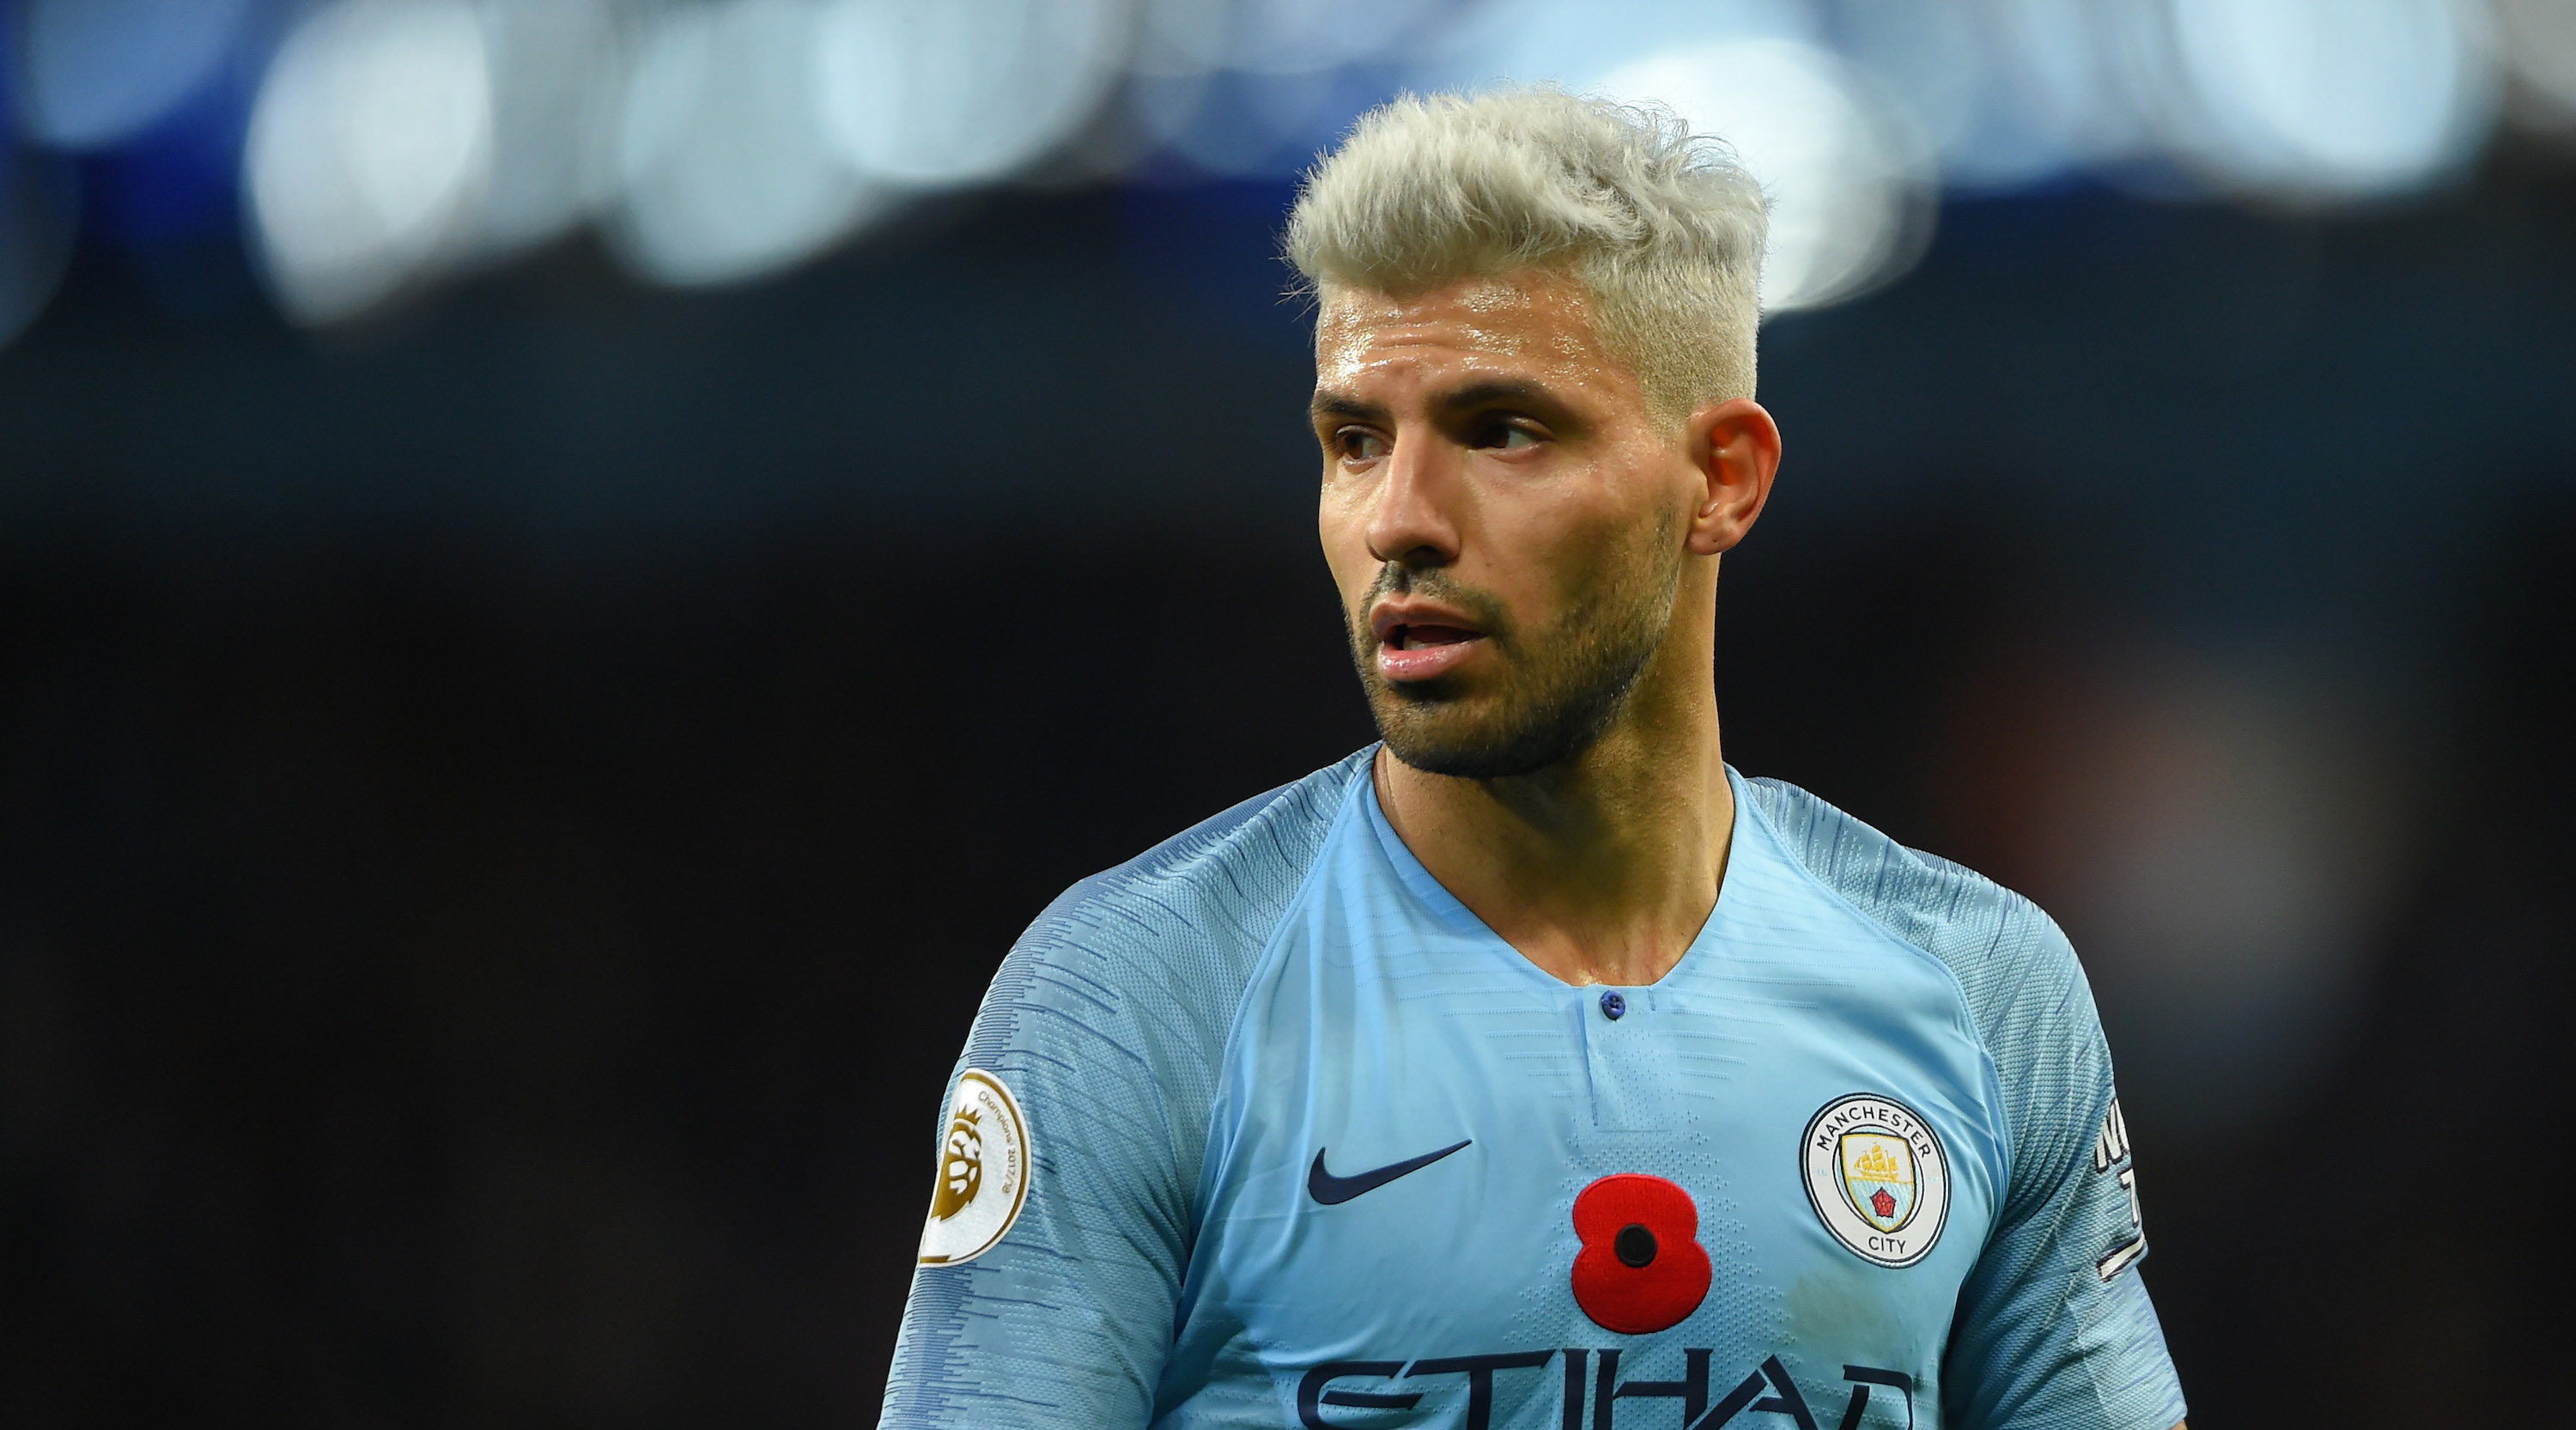 Sergio Aguero of Manchester City looks on during the Premier League match between Manchester City and Manchester United at Etihad Stadium on November 11, 2018 in Manchester, United Kingdom. (Photo by Mike Hewitt/Getty Images)